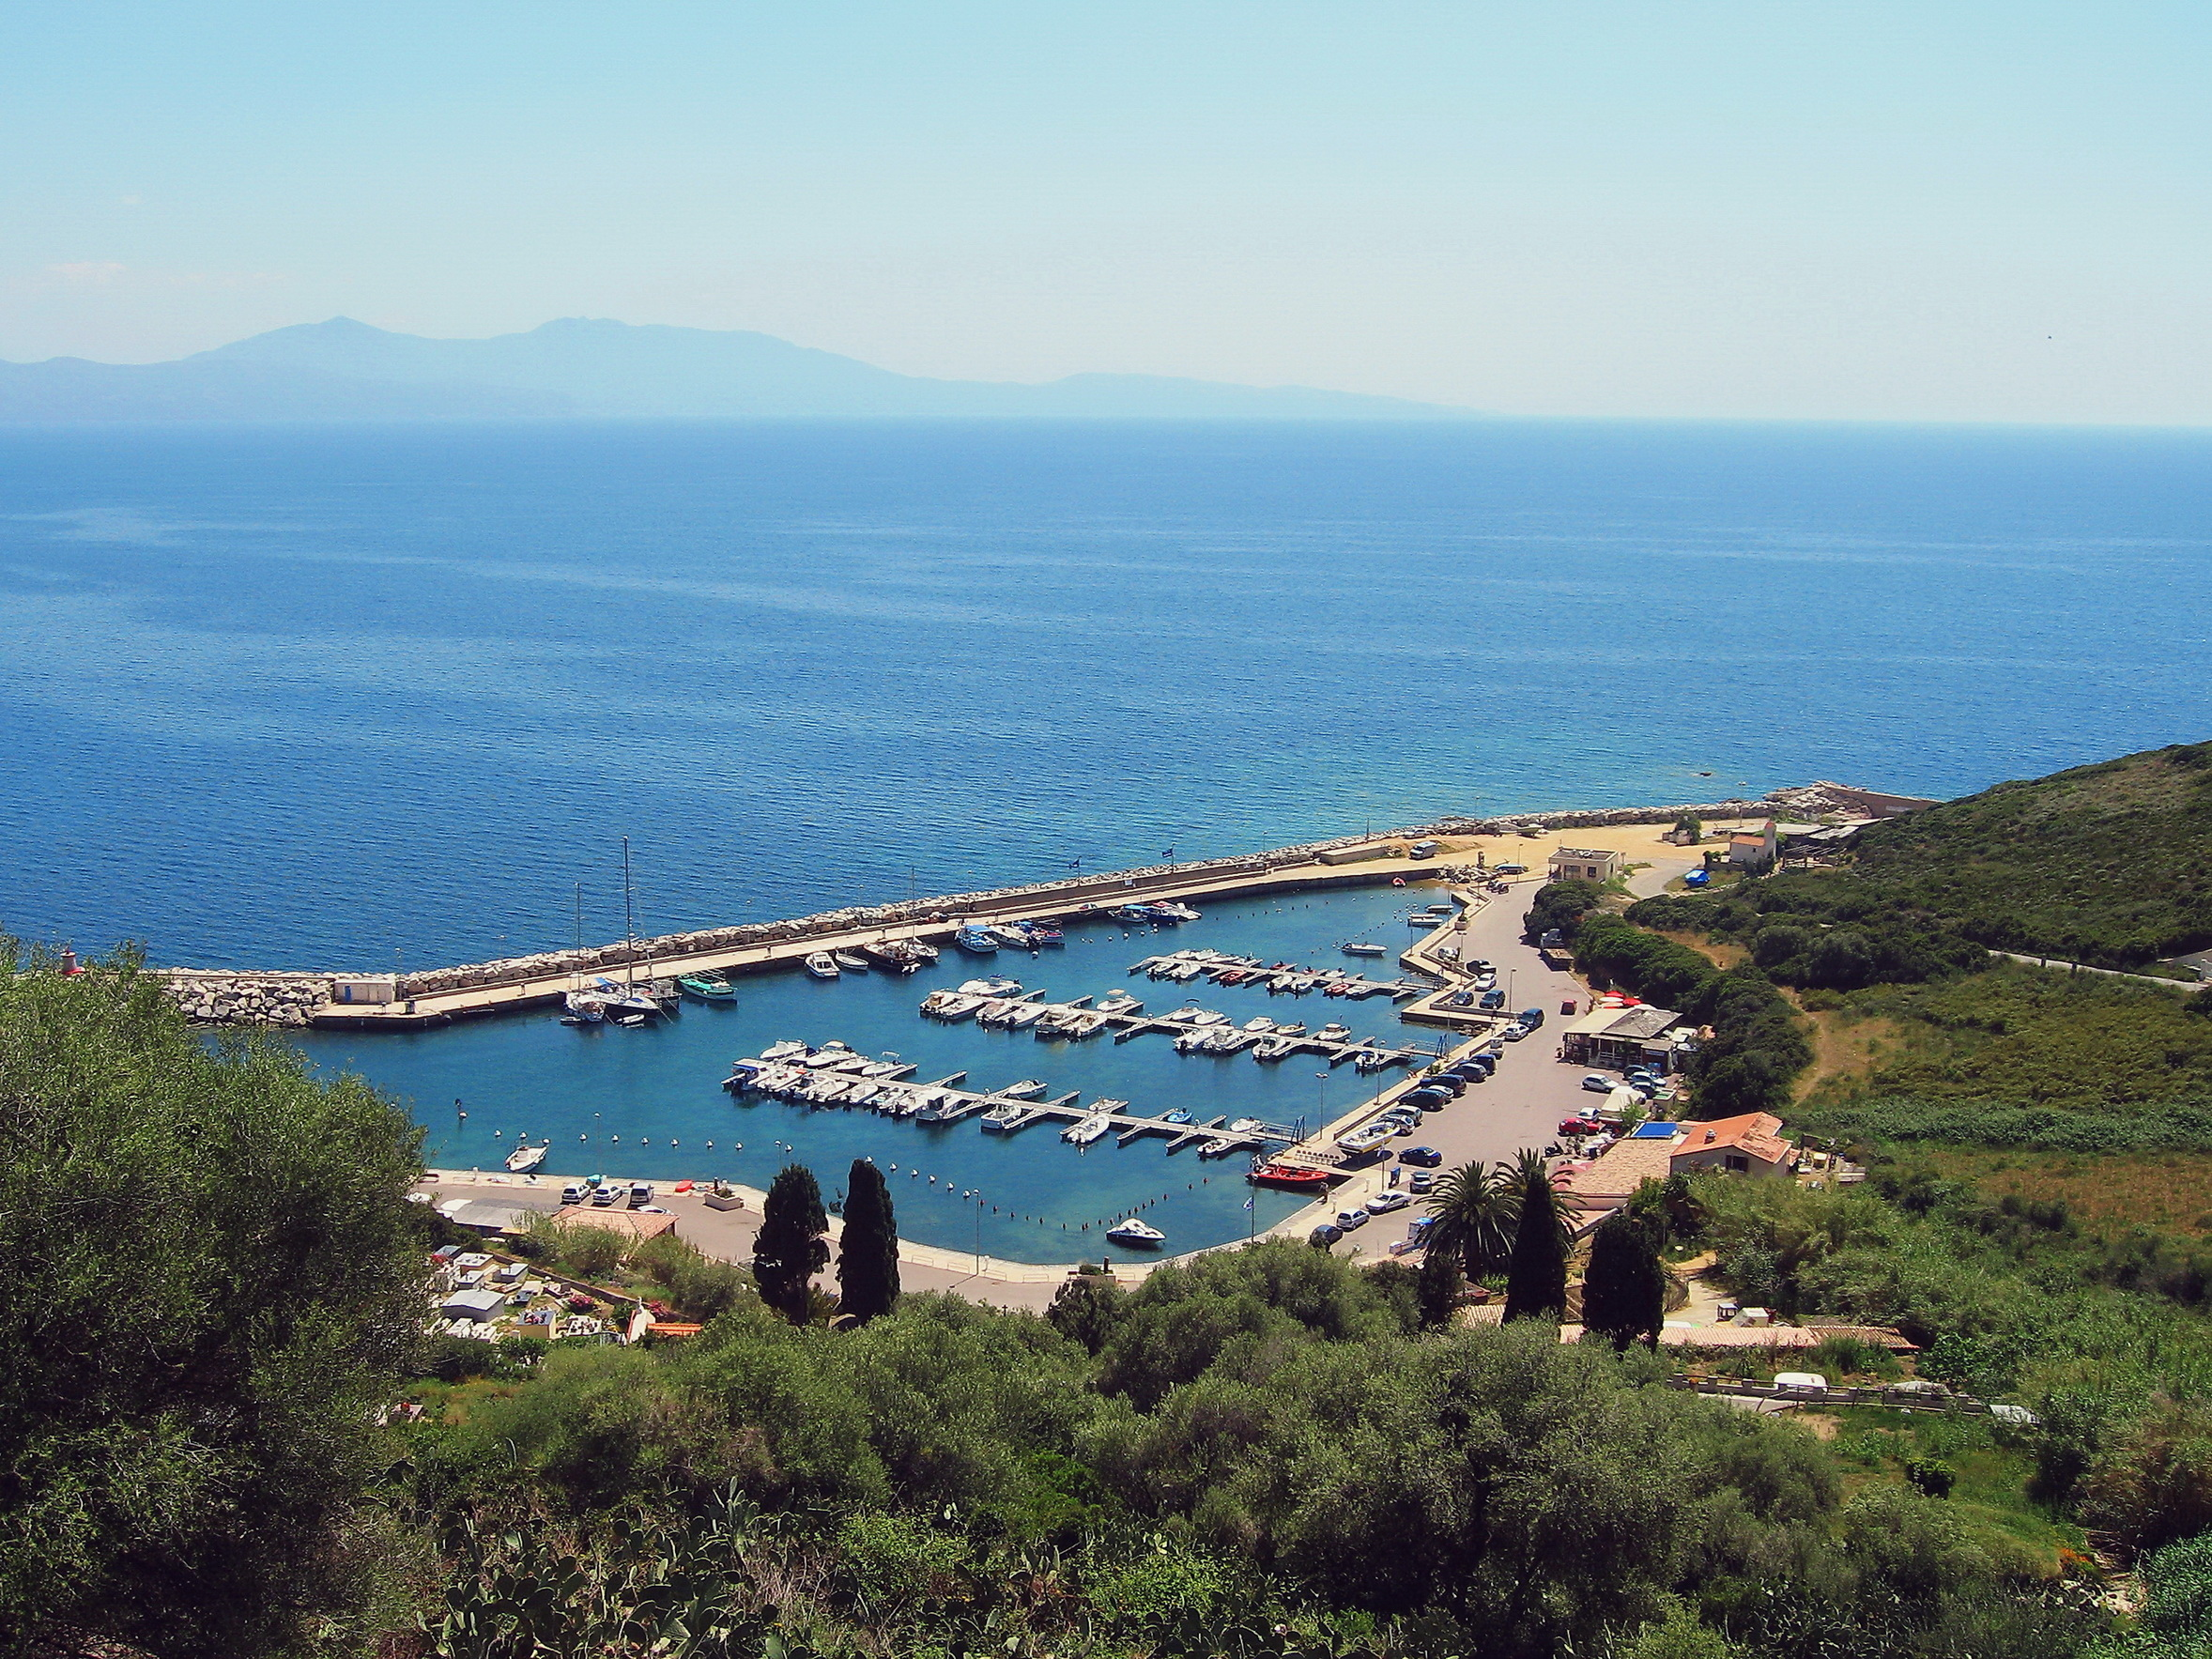 Top view of harbor near Cargese, Corsica island, France